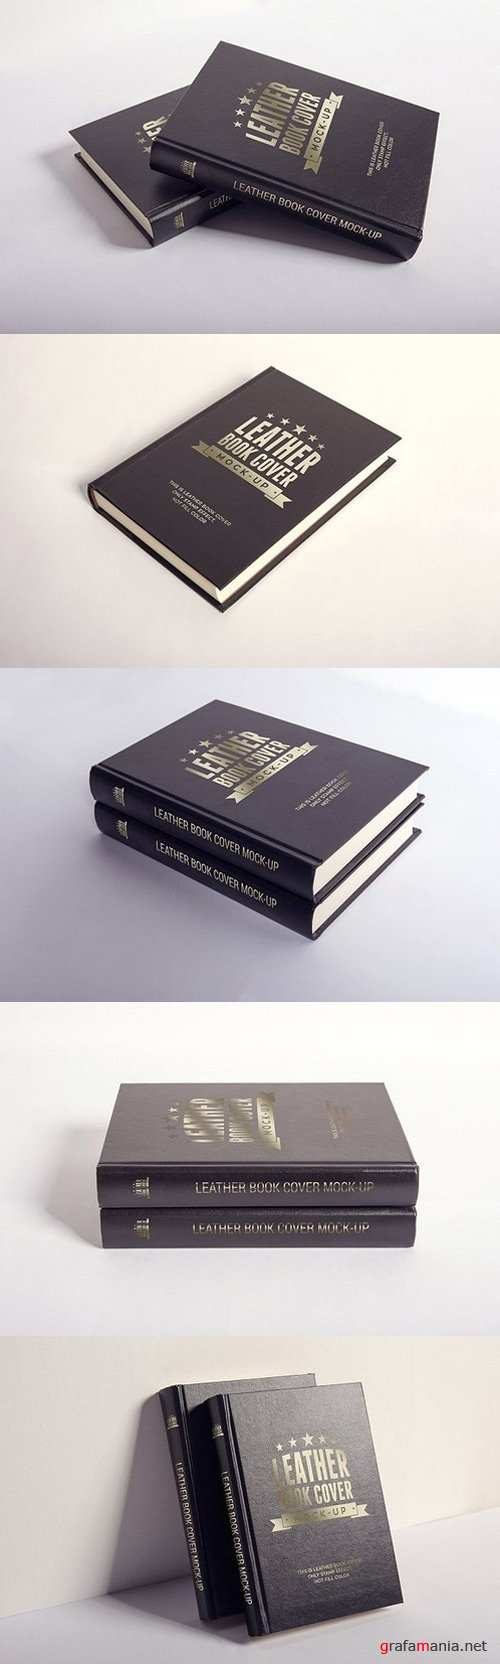 LEATHER BOOK COVER MOCK-UP 1420568